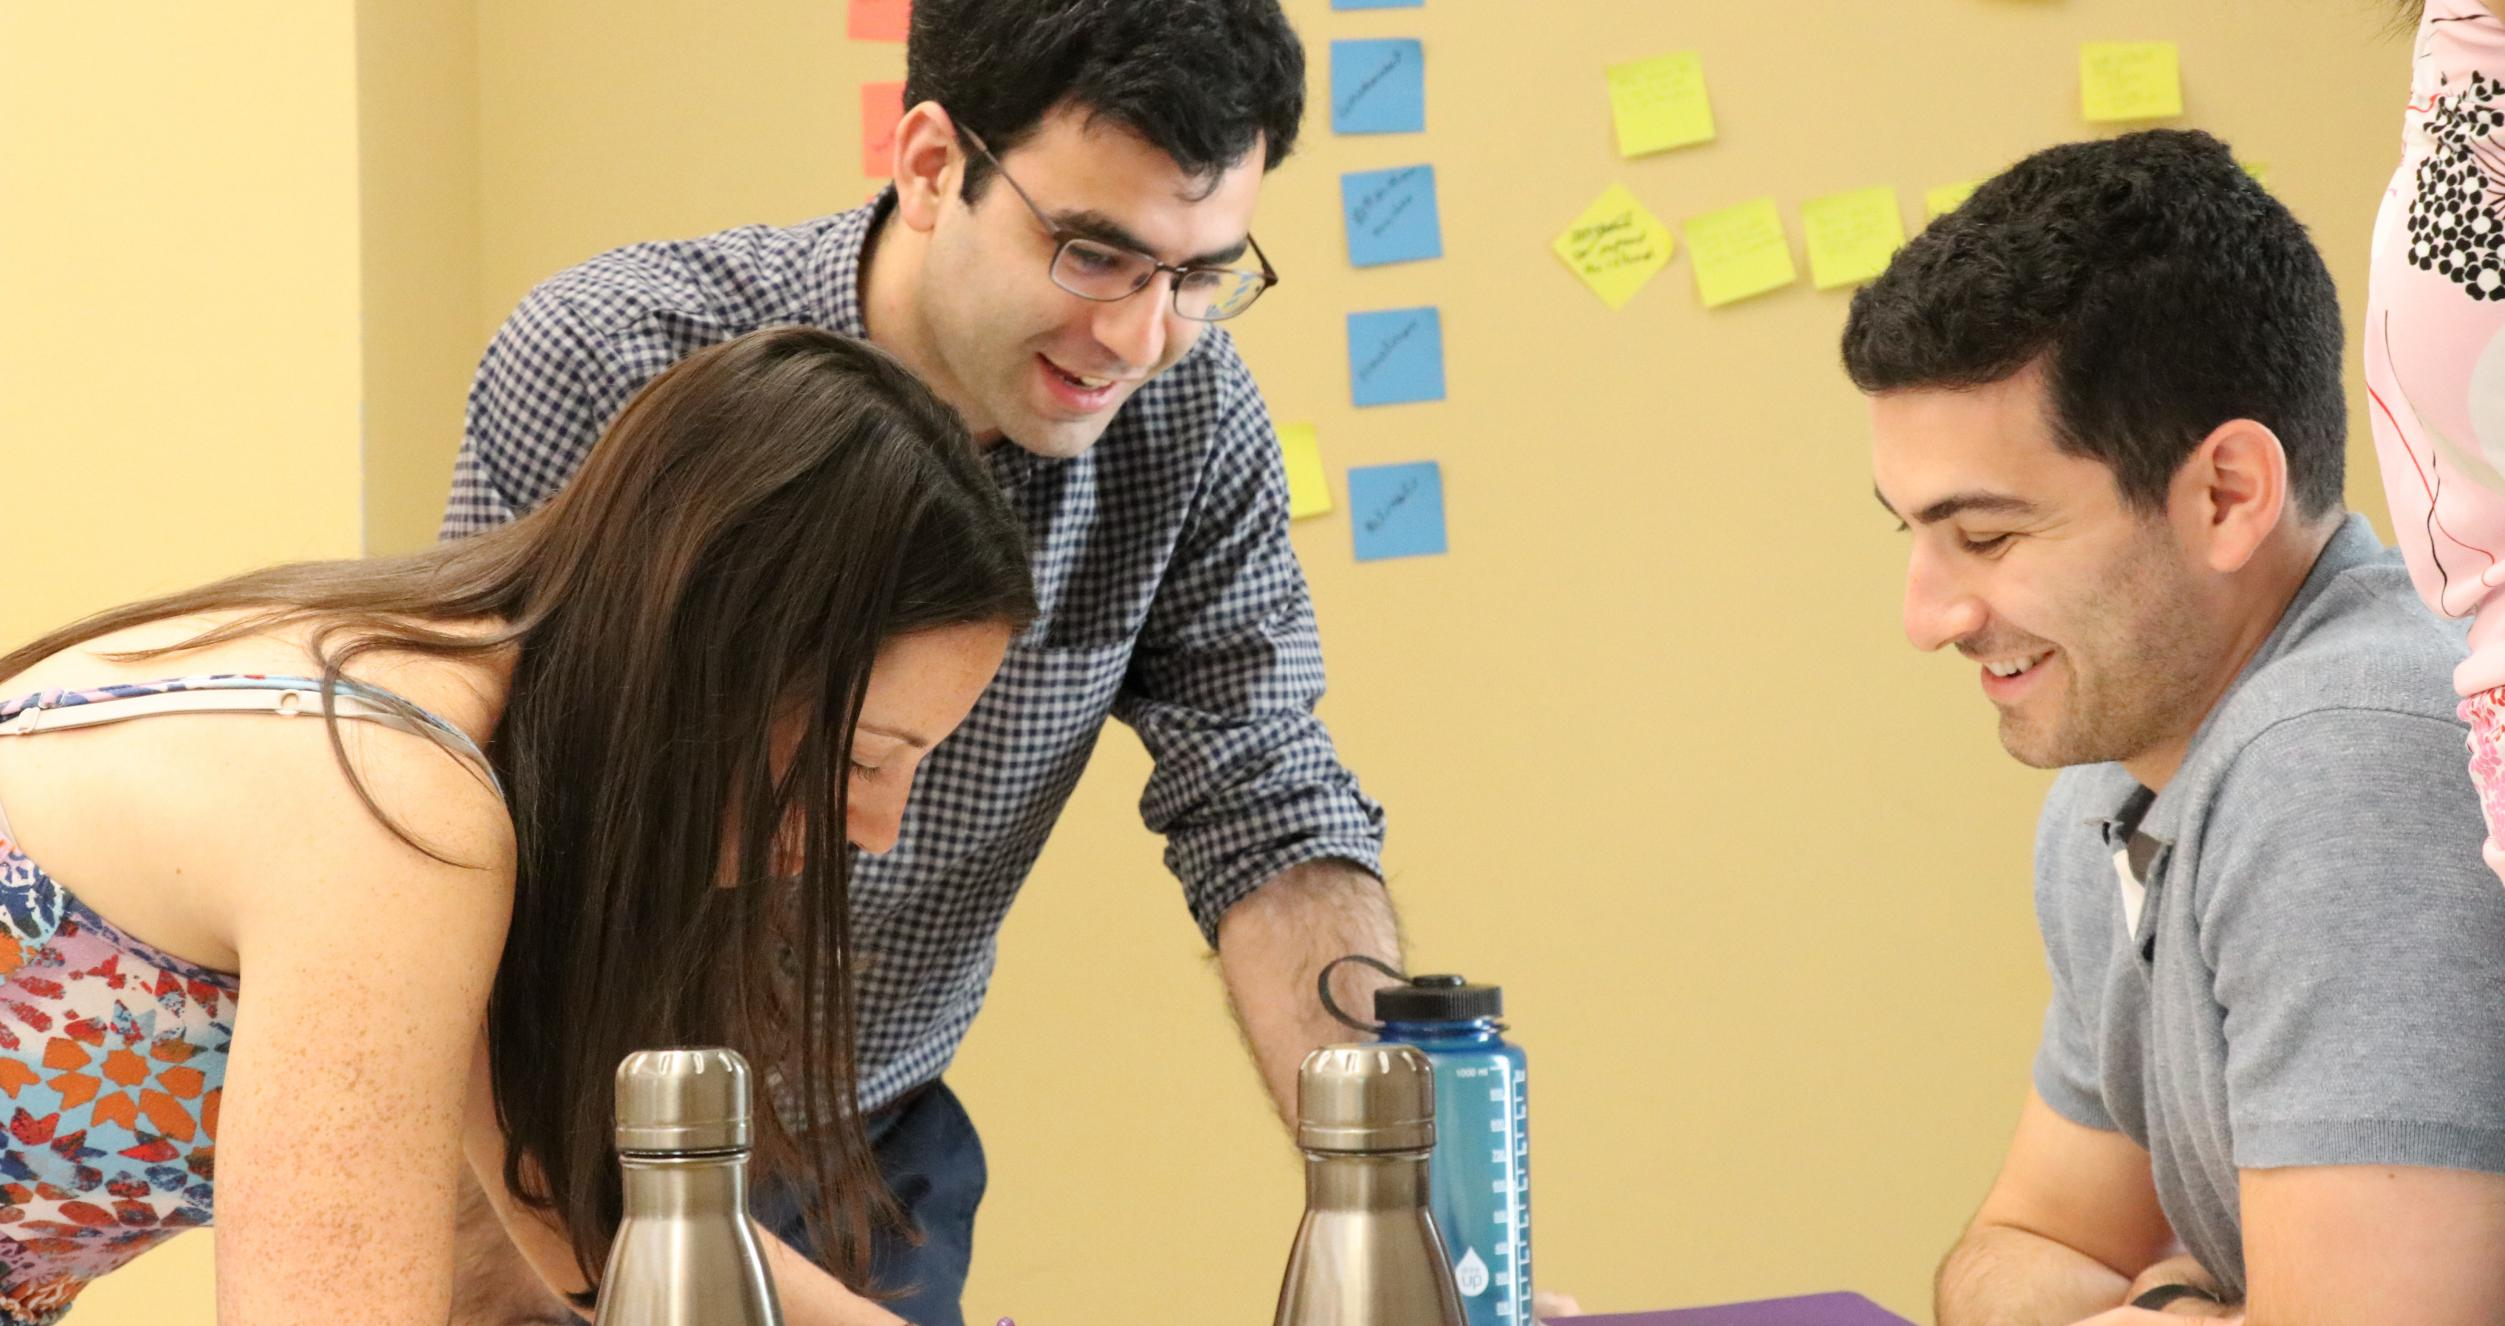 Tech MBA students writing and smiling while solving a problem